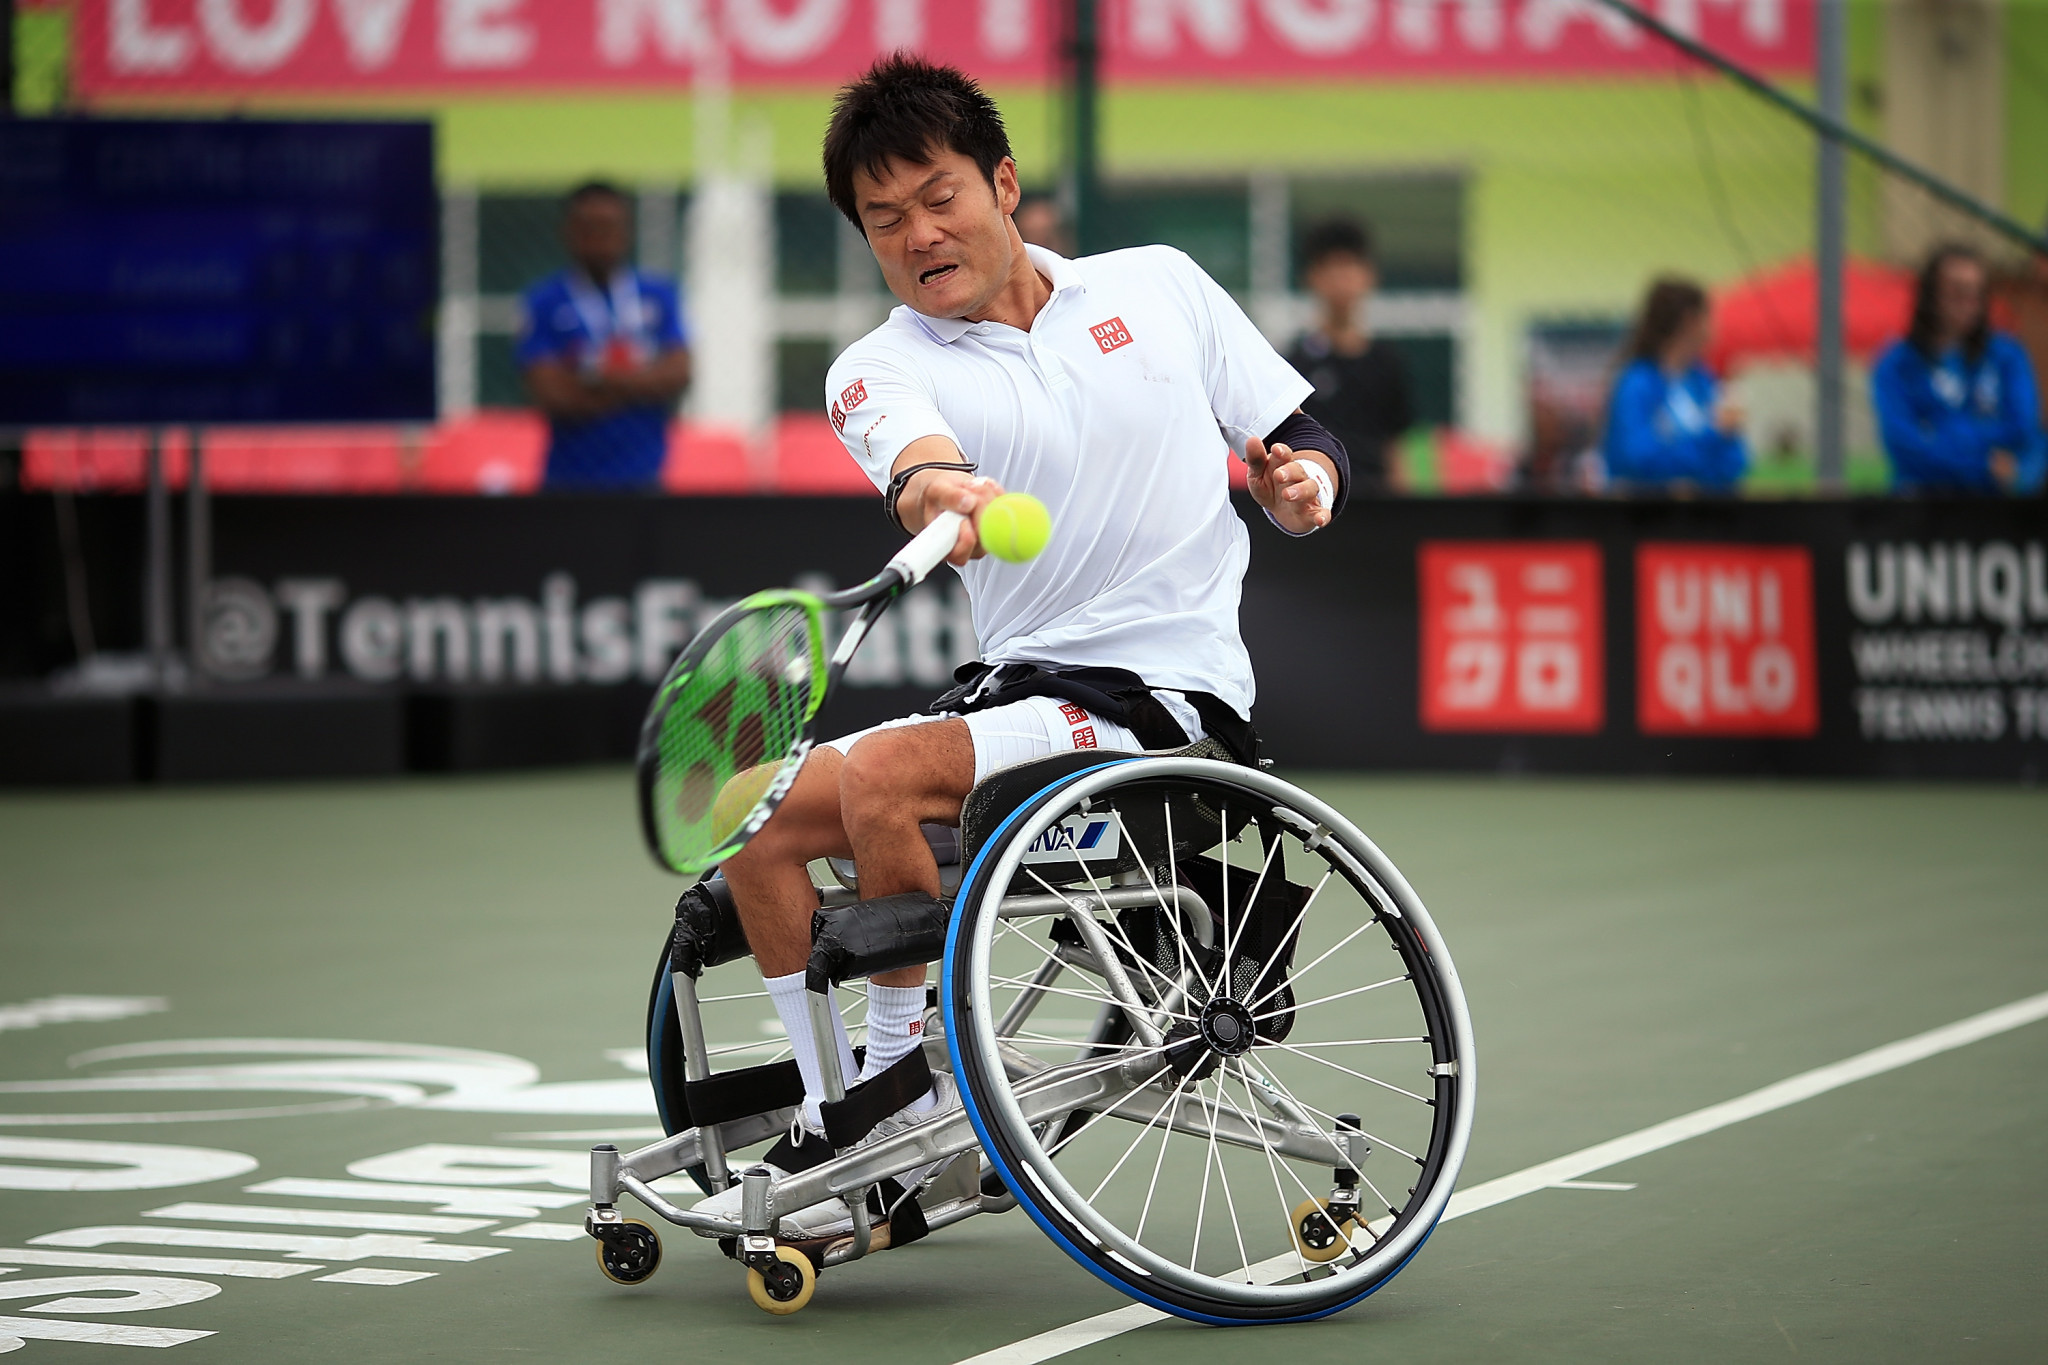 Kunieda to begin Australian Open wheelchair title defence against Hewett in repeat of US Open final